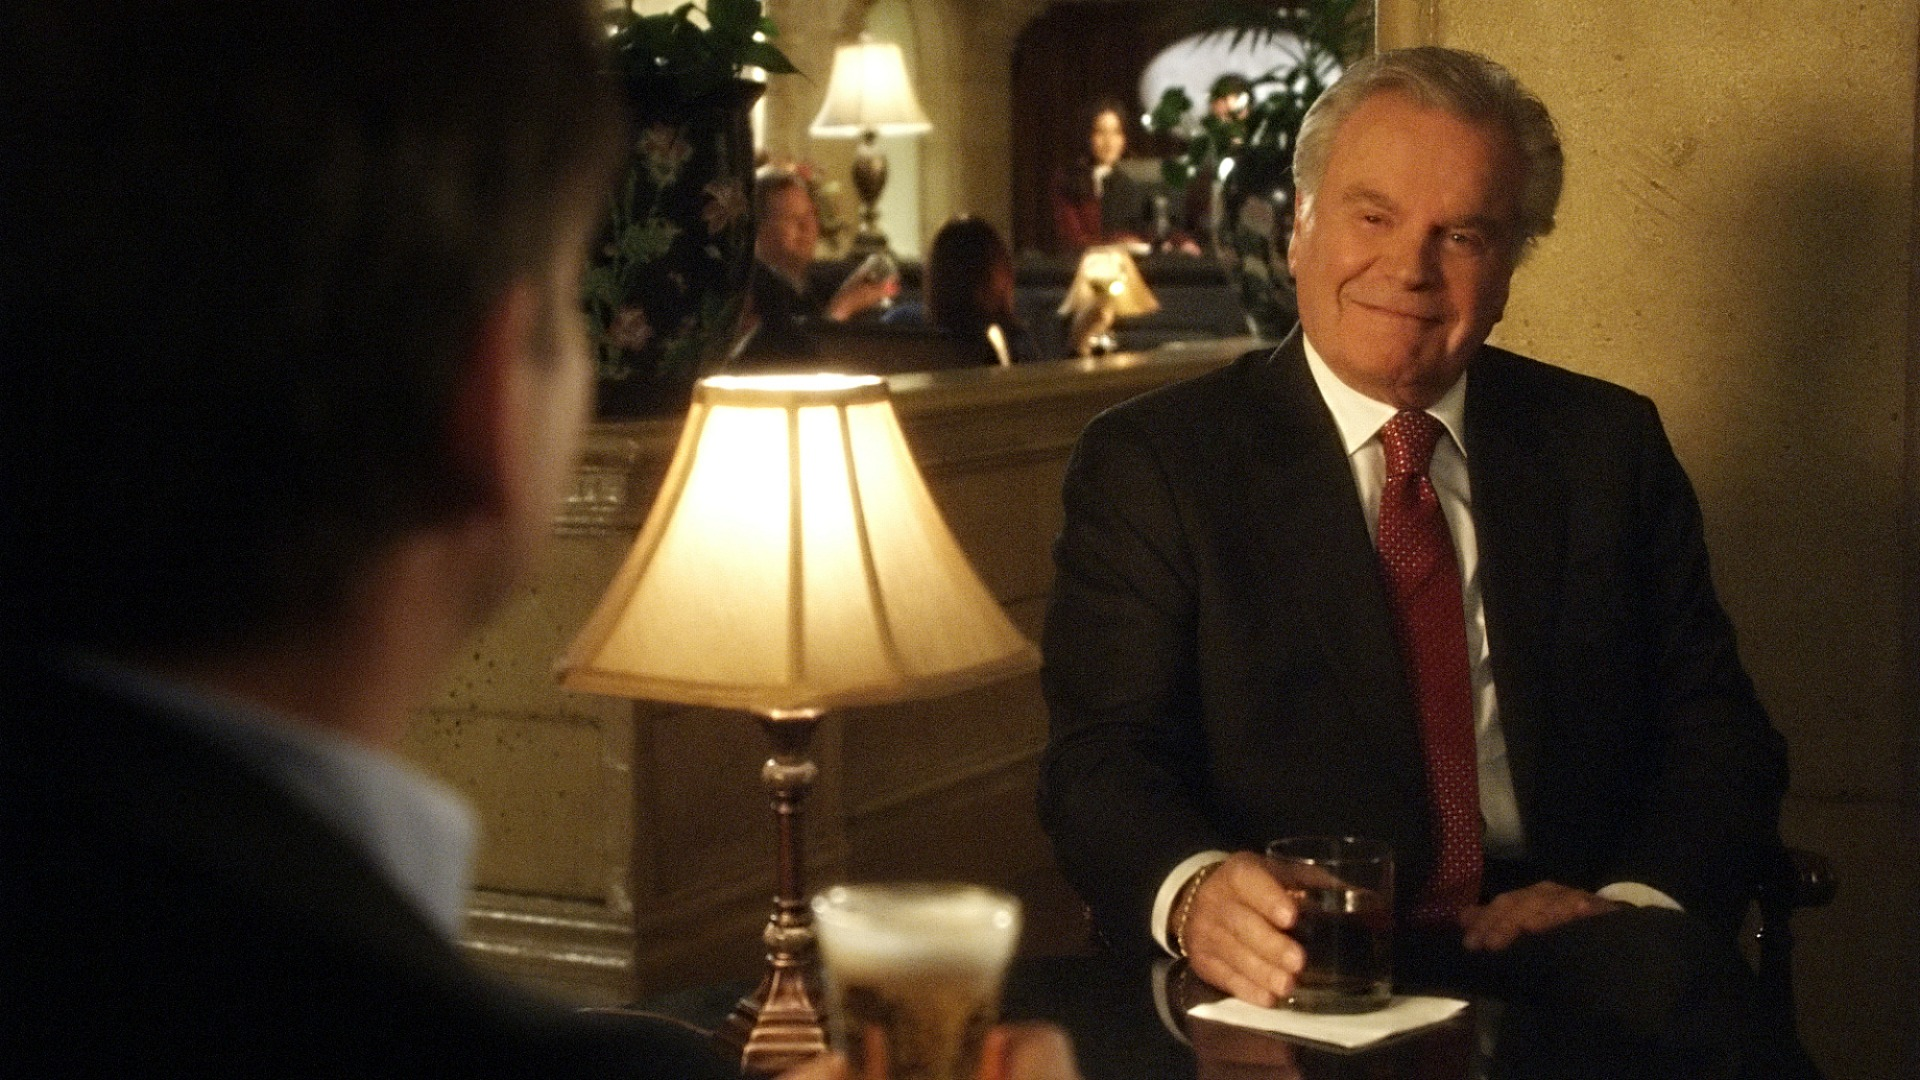 DiNozzo Sr. begins charming his way into our hearts